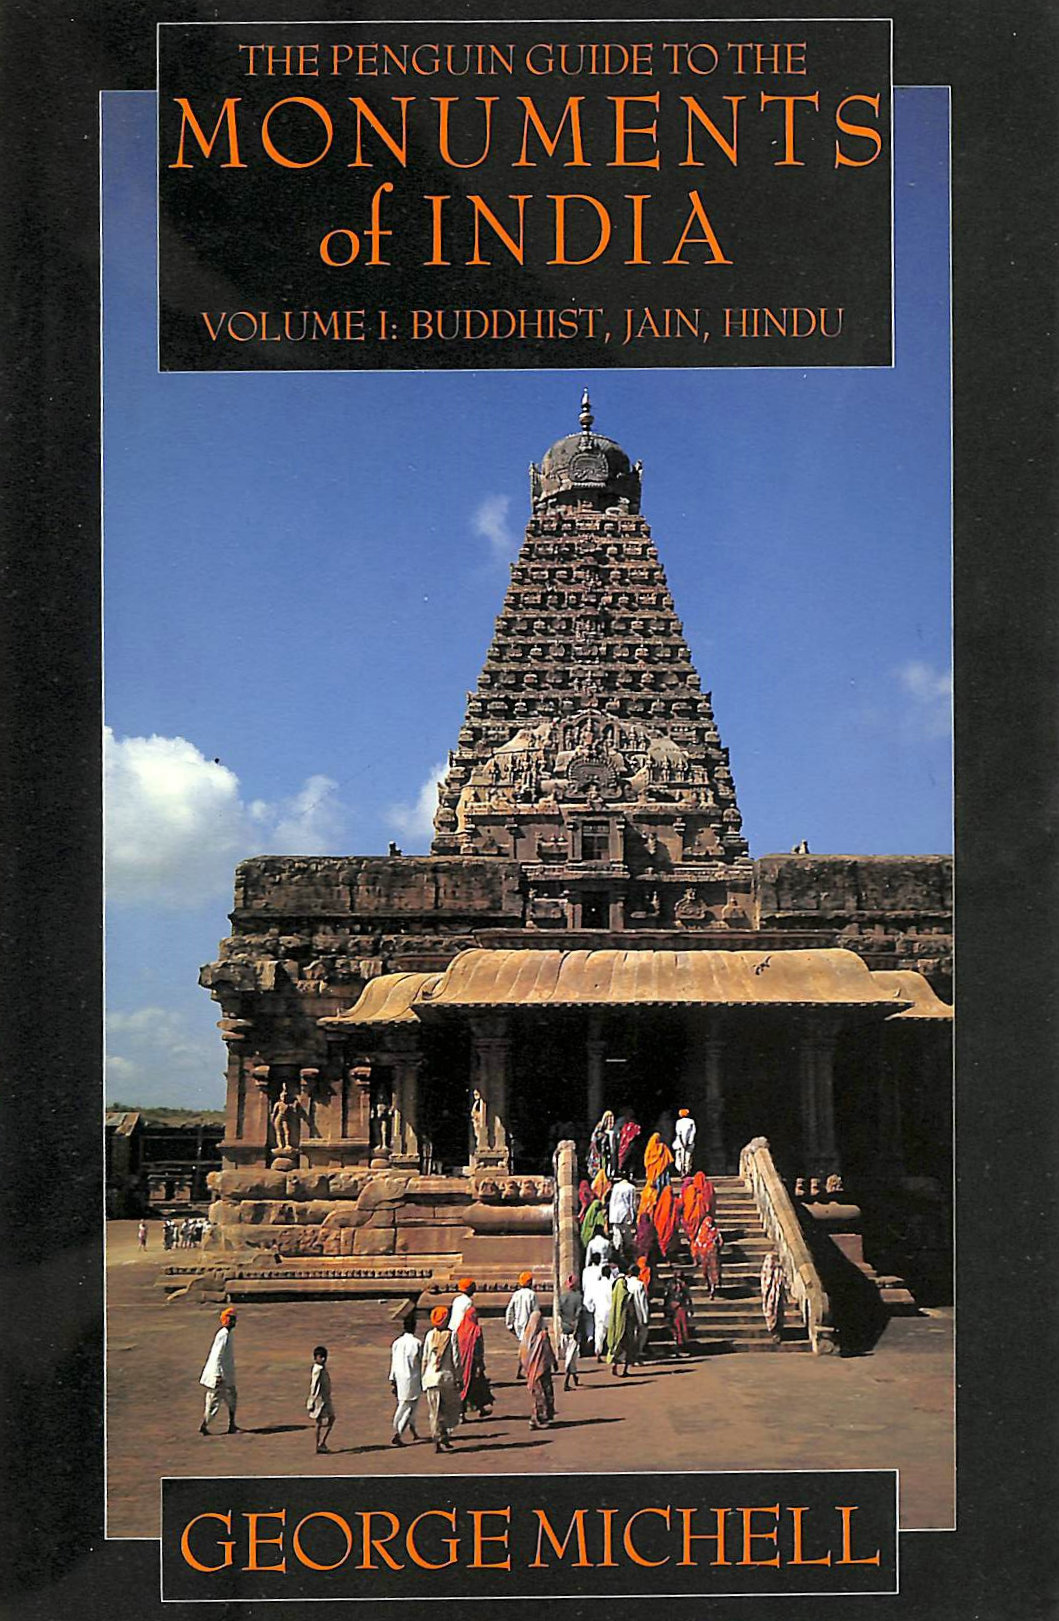 Image for The Penguin Guide to the Monuments of India: Buddhist, Jain, Hindu v. 1